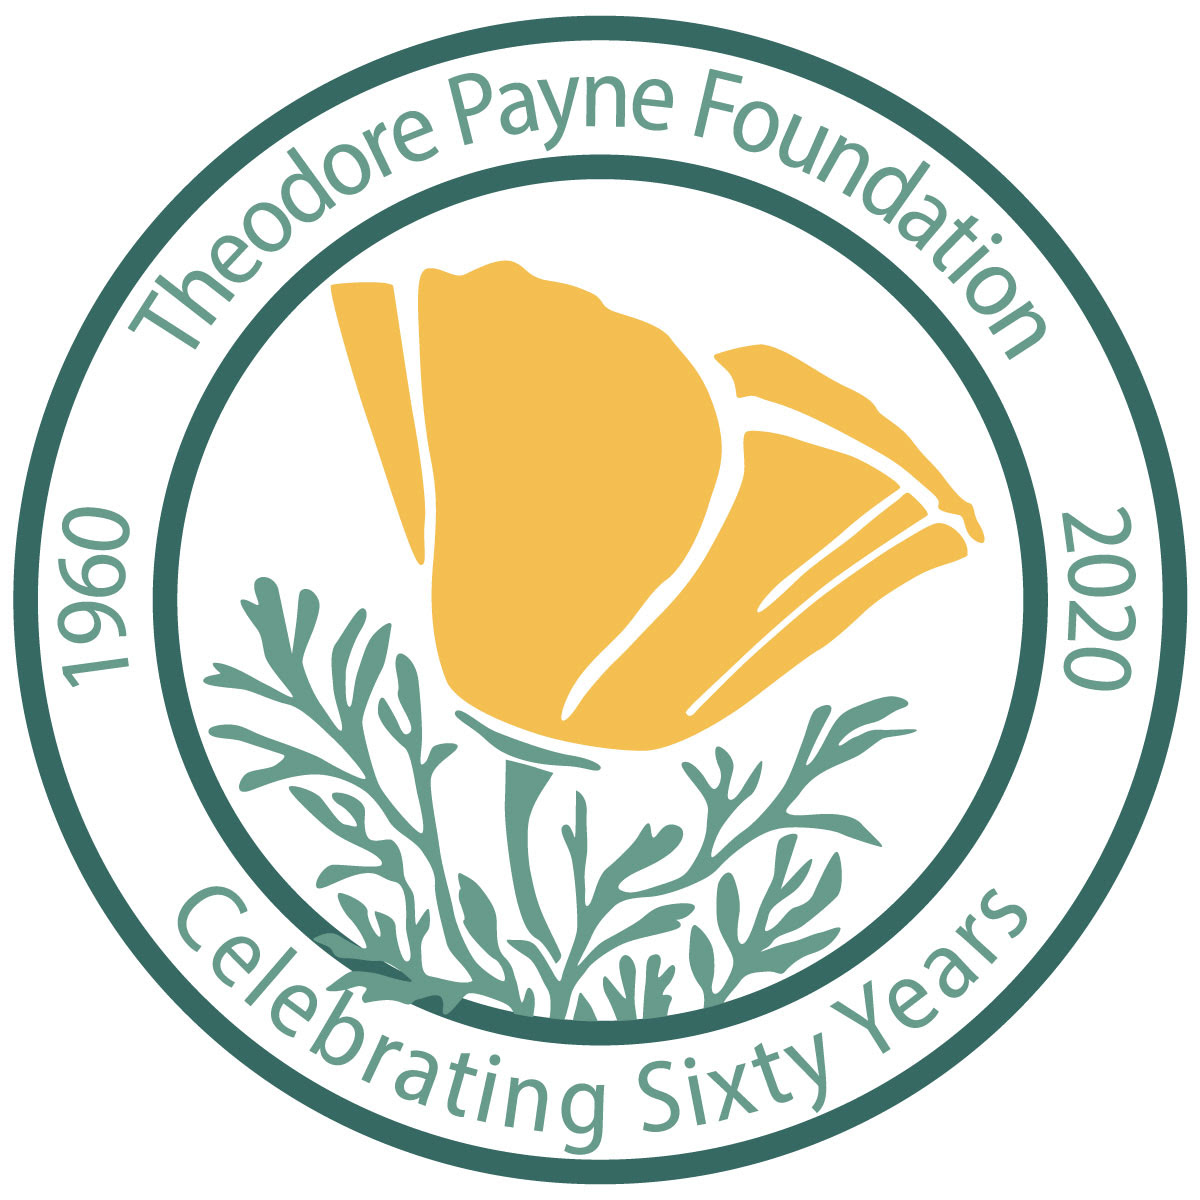 Theodore Payne Foundation logo